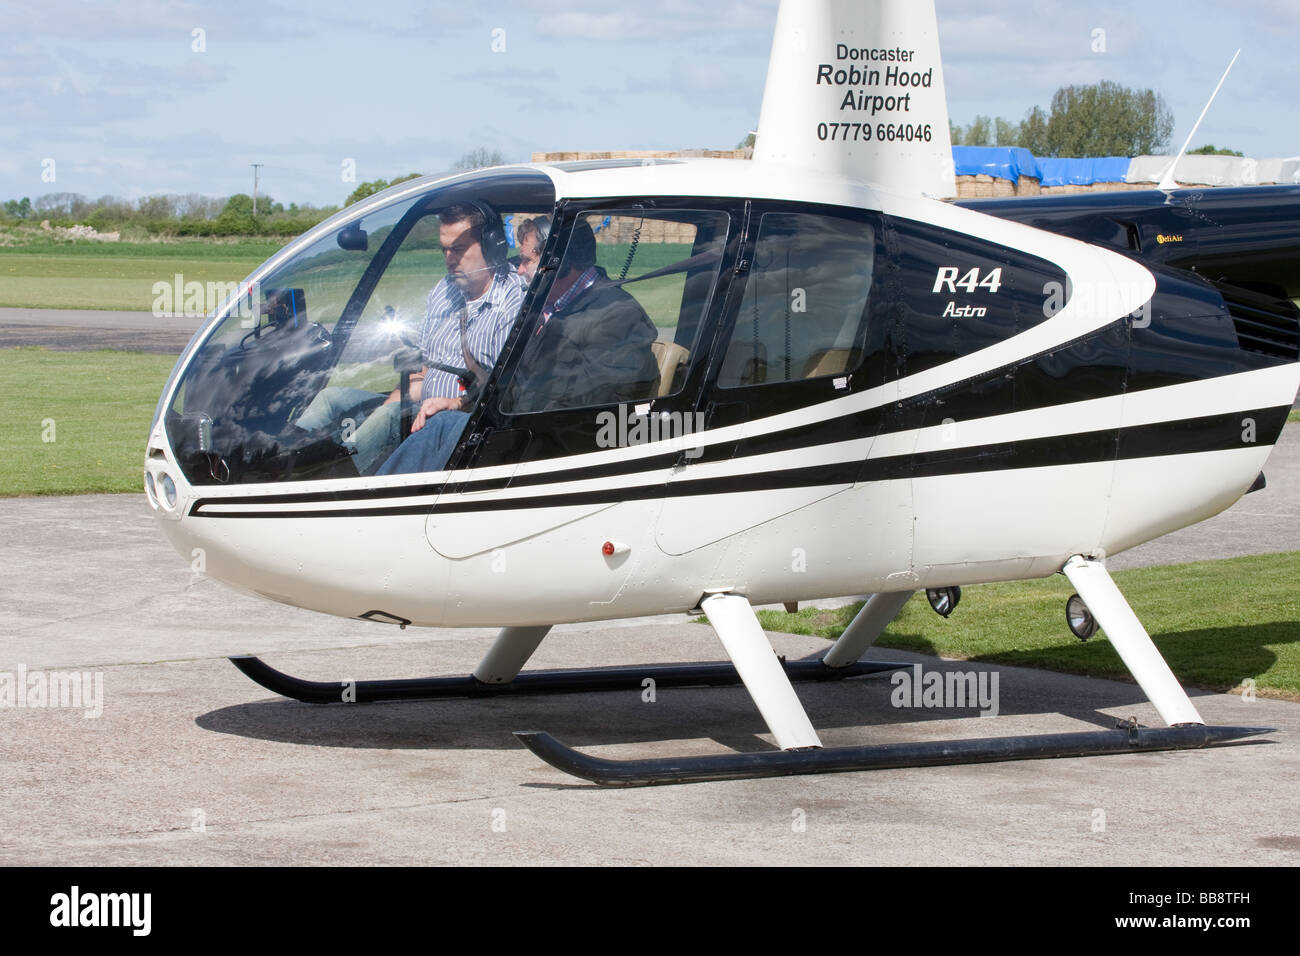 Robinson R44 Astro G-OWND on the ground at Breighton Airfield - Stock Image